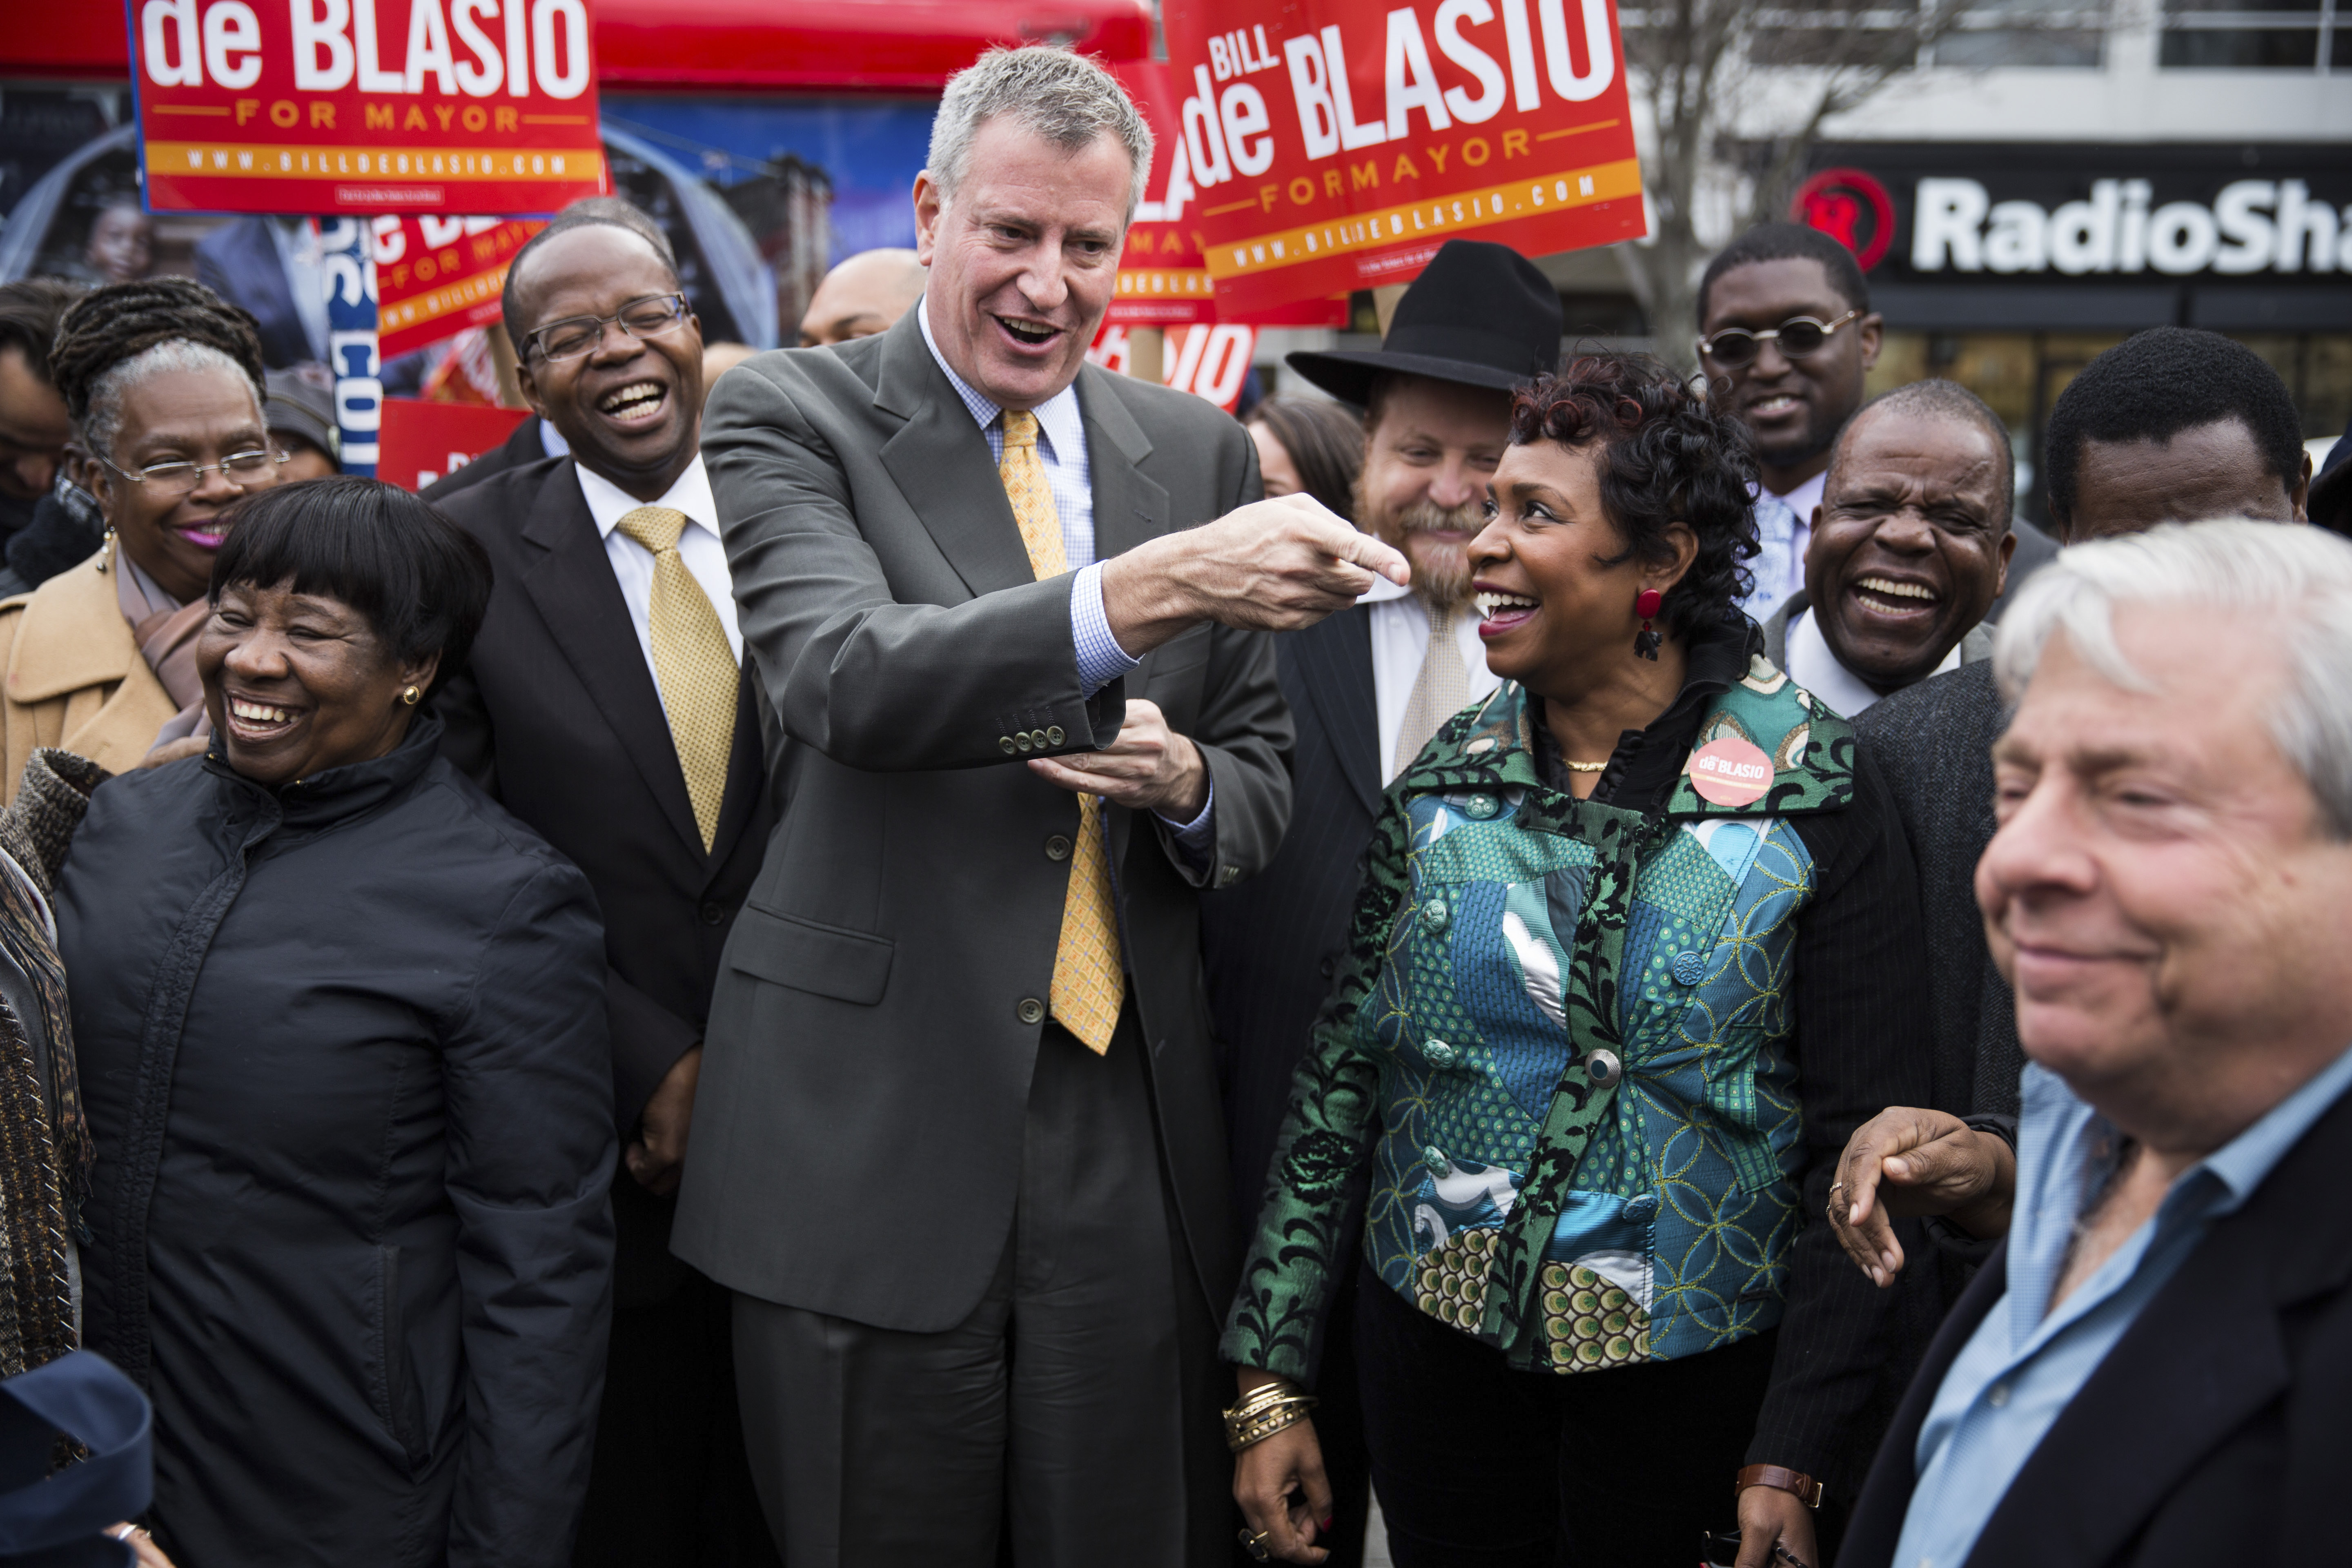 Bill de Blasio greets supporters on Election Day in the Brooklyn borough of New York. He won the election by a wide margin to become the city's 109th mayor and the first Democrat elected to the post since the 1980s.